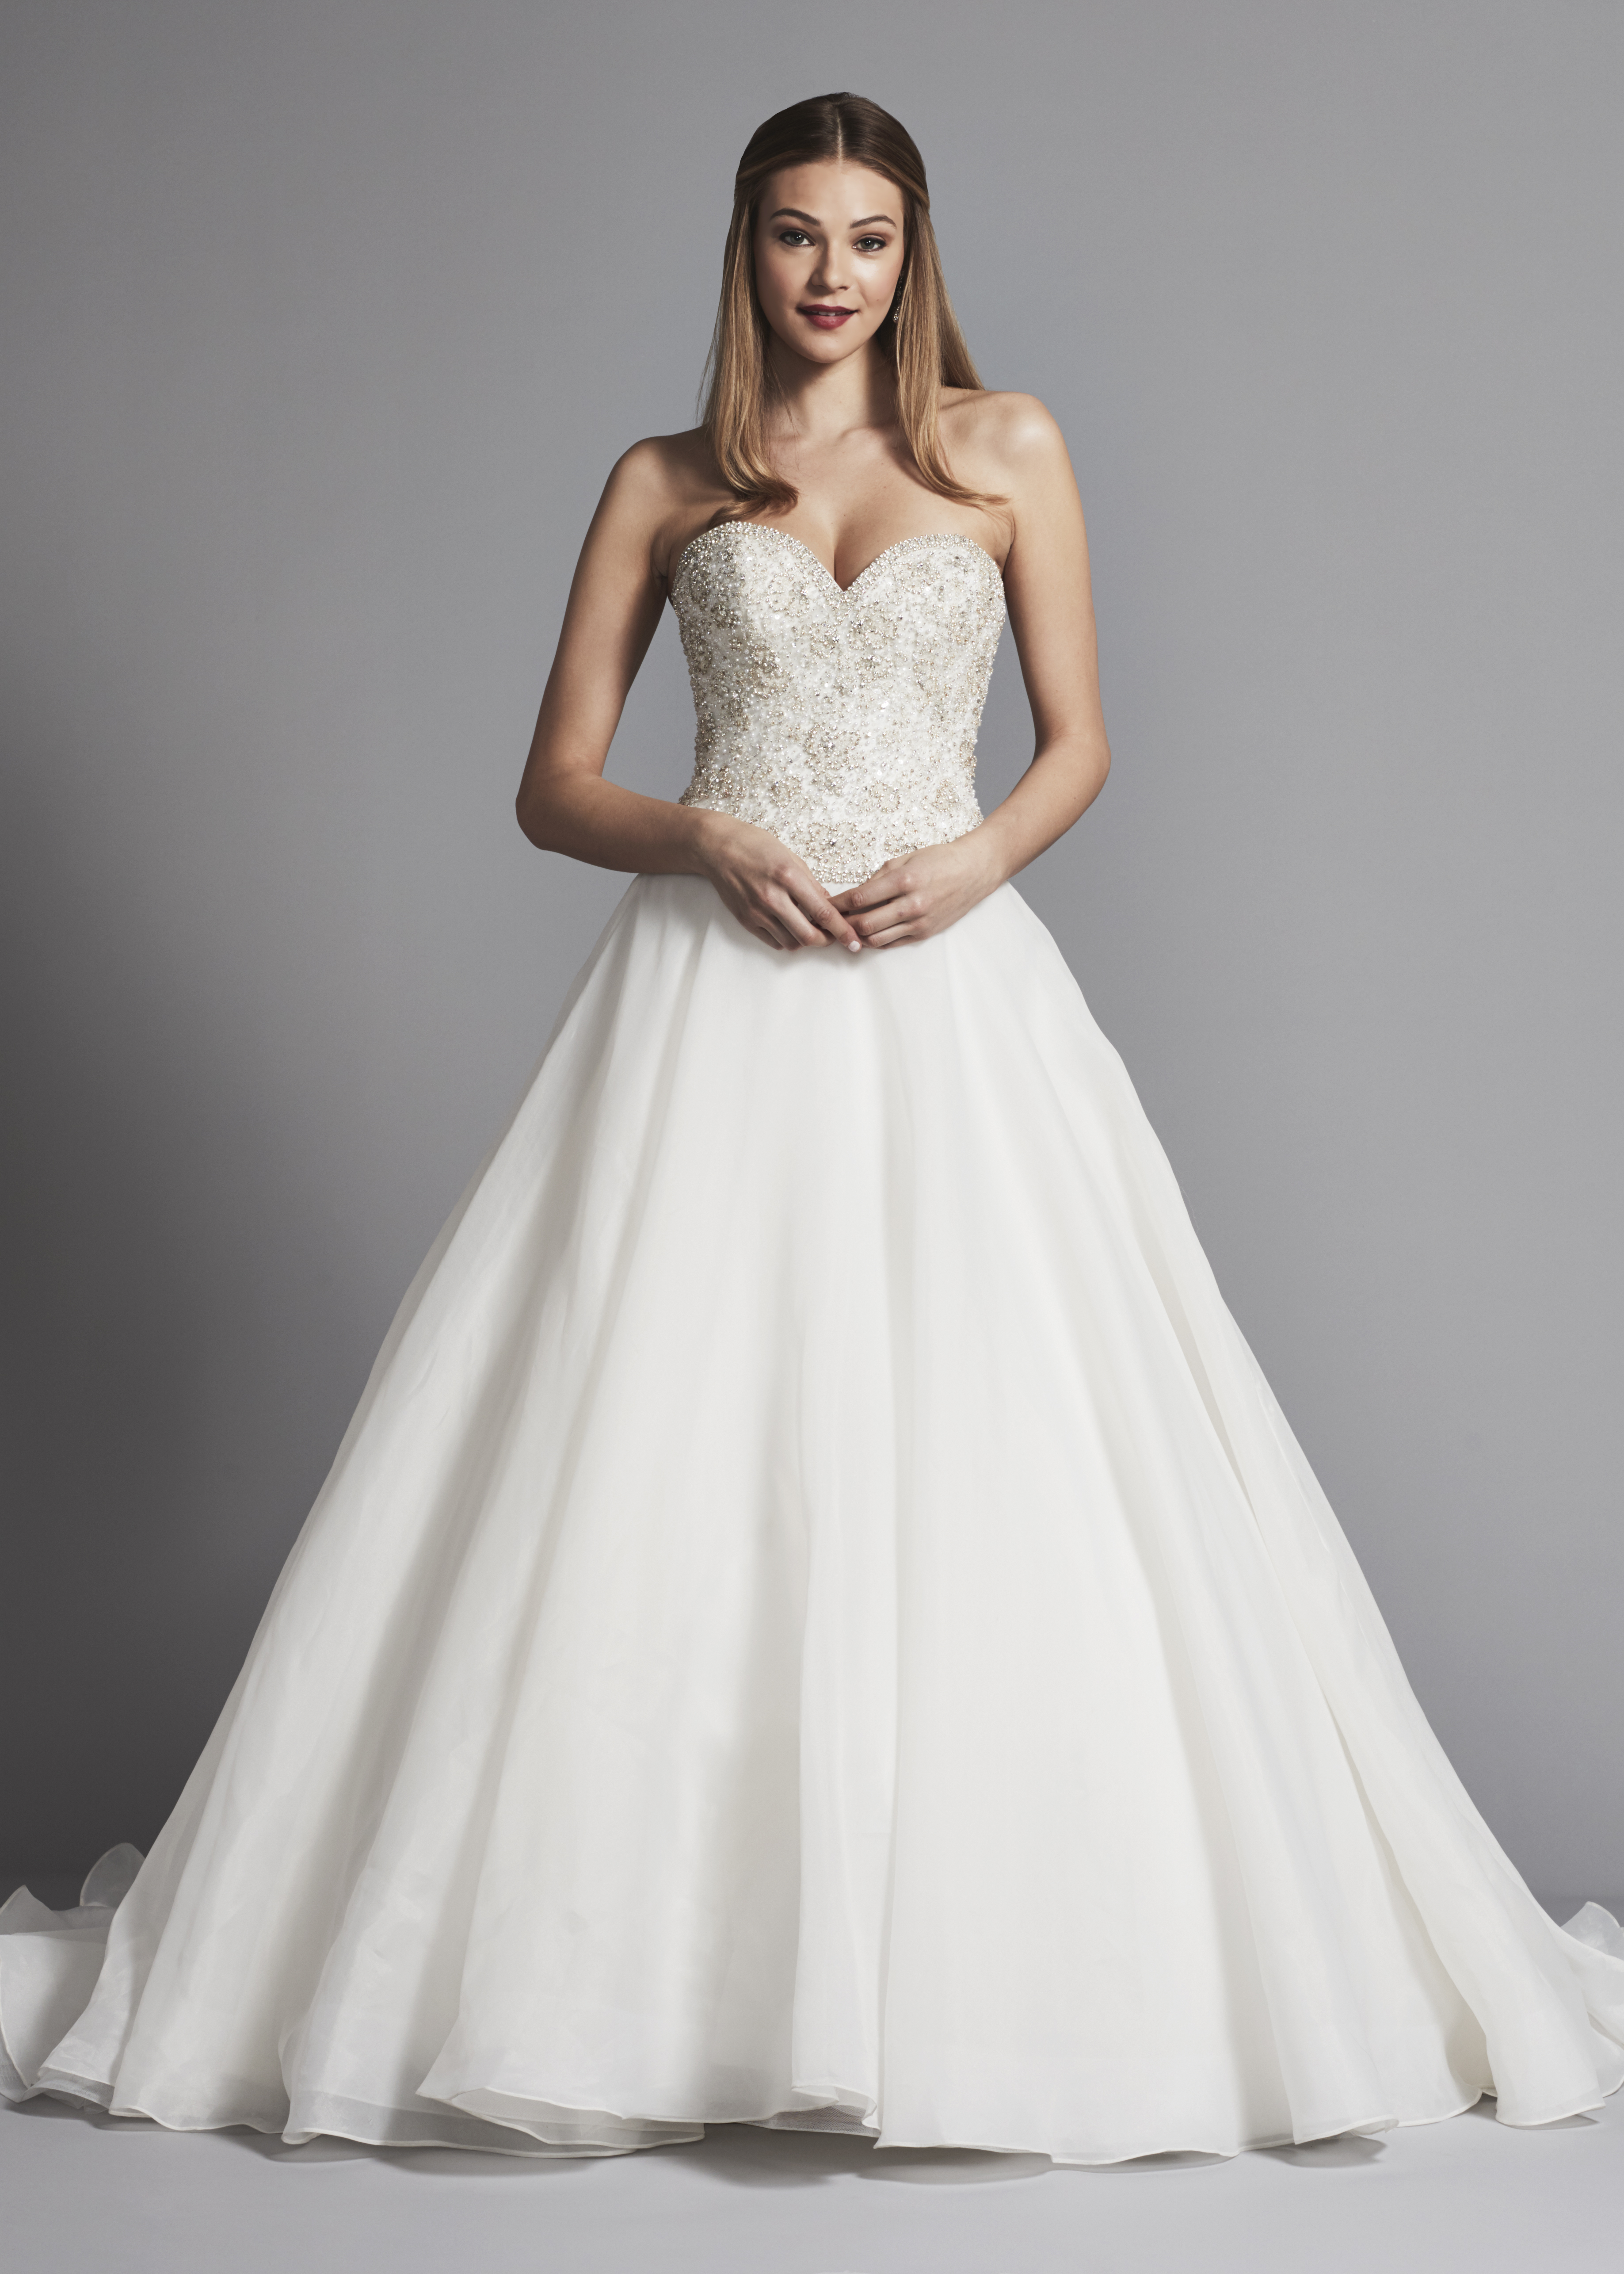 b99c06cc7e65 Classic Strapless Sweetheart Ball Gown Wedding Dress With Beading |  Kleinfeld Bridal